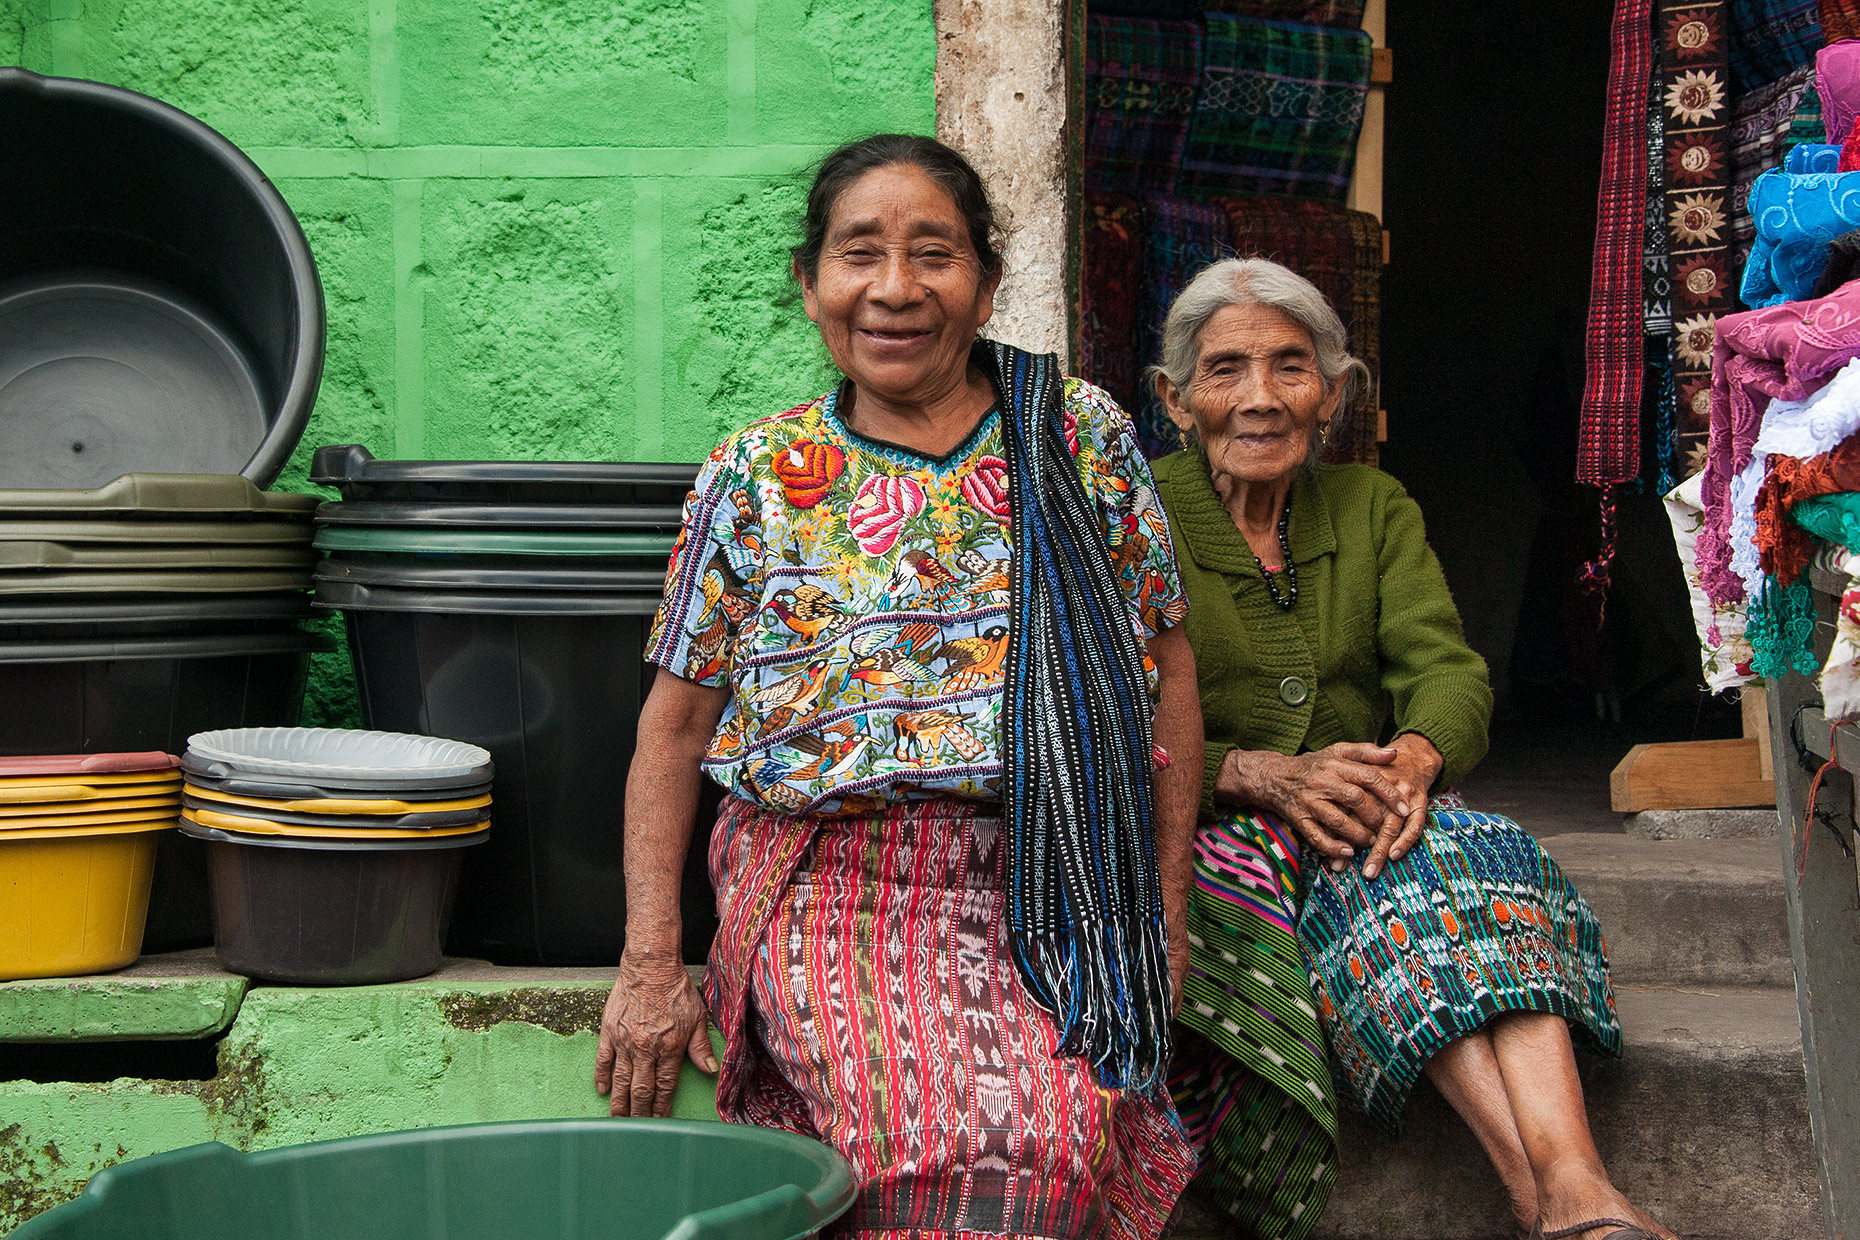 Women at Lake Atitlan, Guatemala